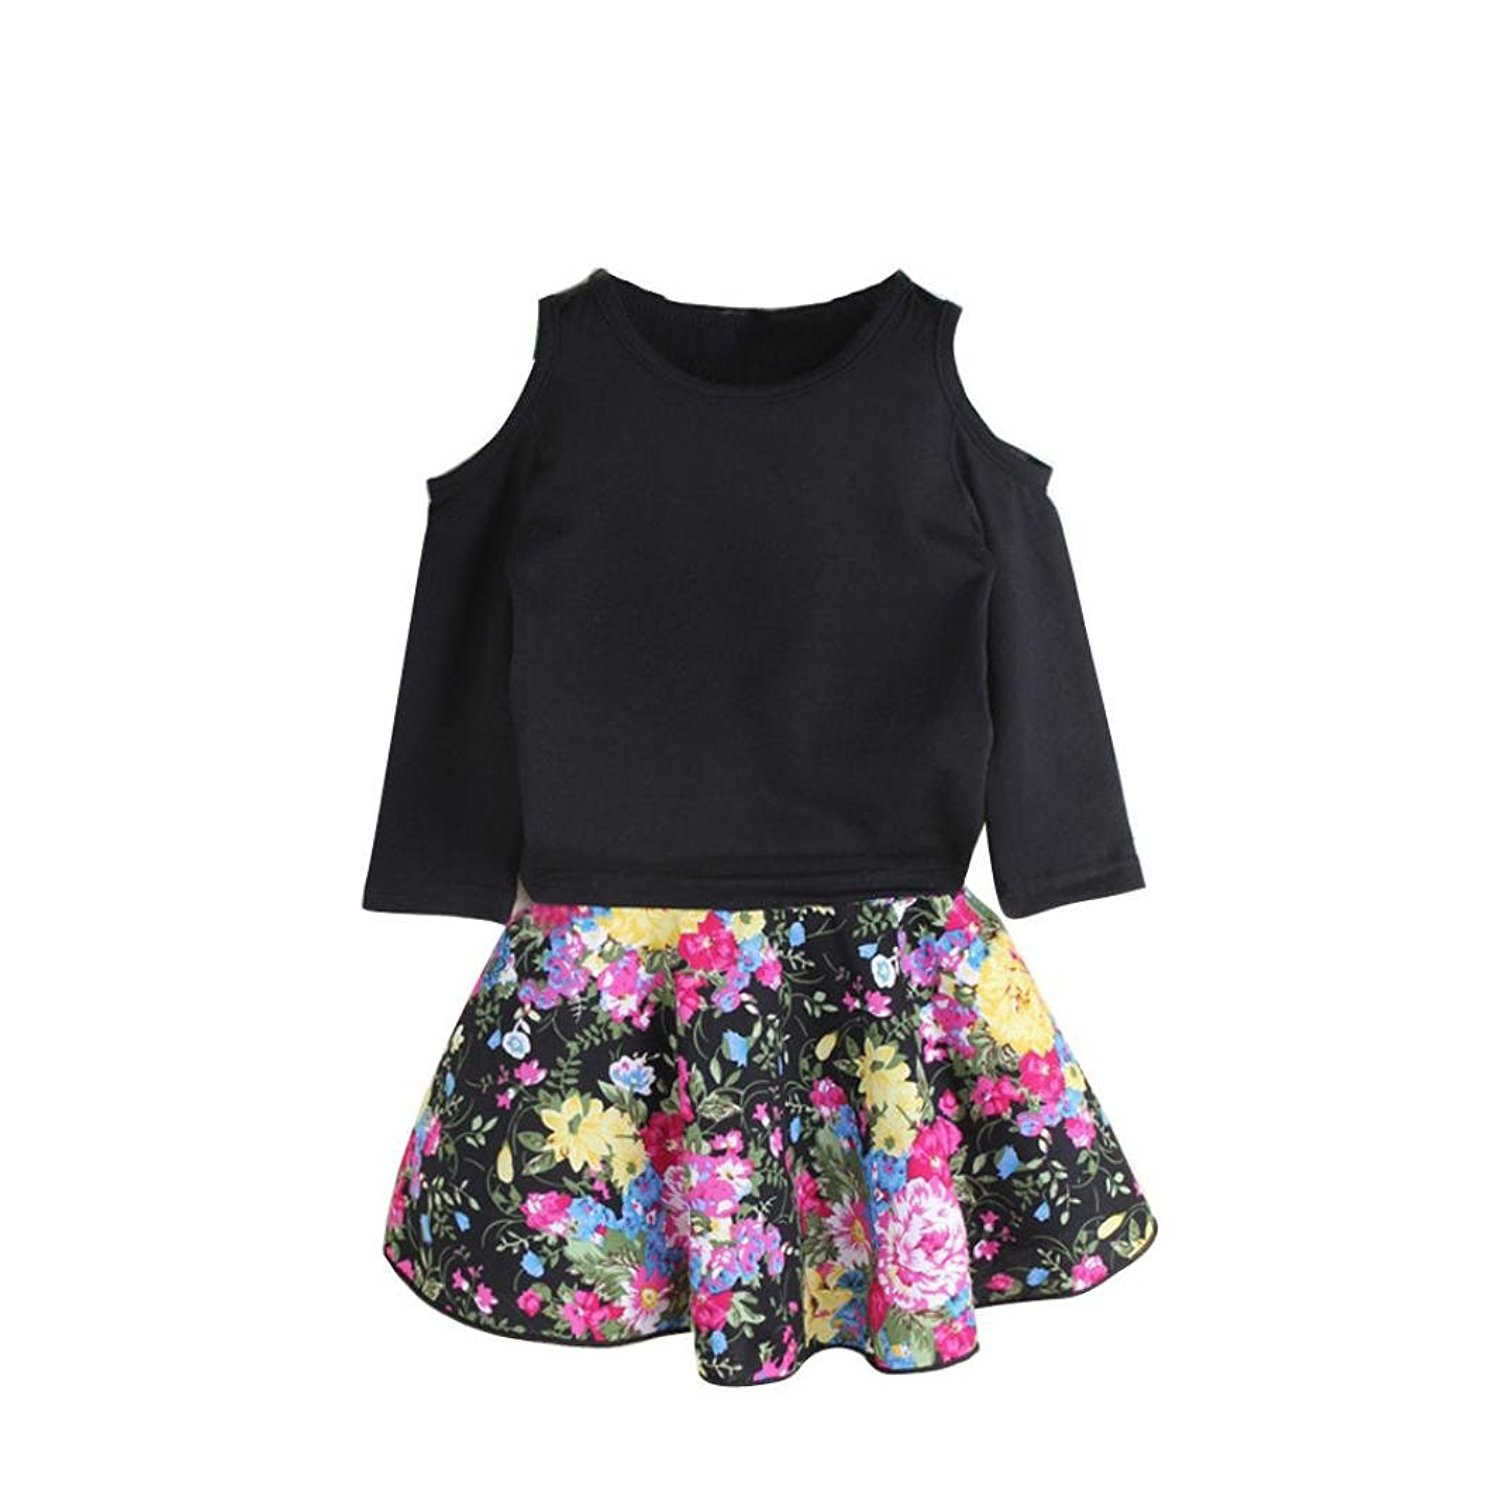 GQMART 1Set Kid Girls Off Shoulder T-Shirt Tops Floral Short Skirt Outfit Clothes